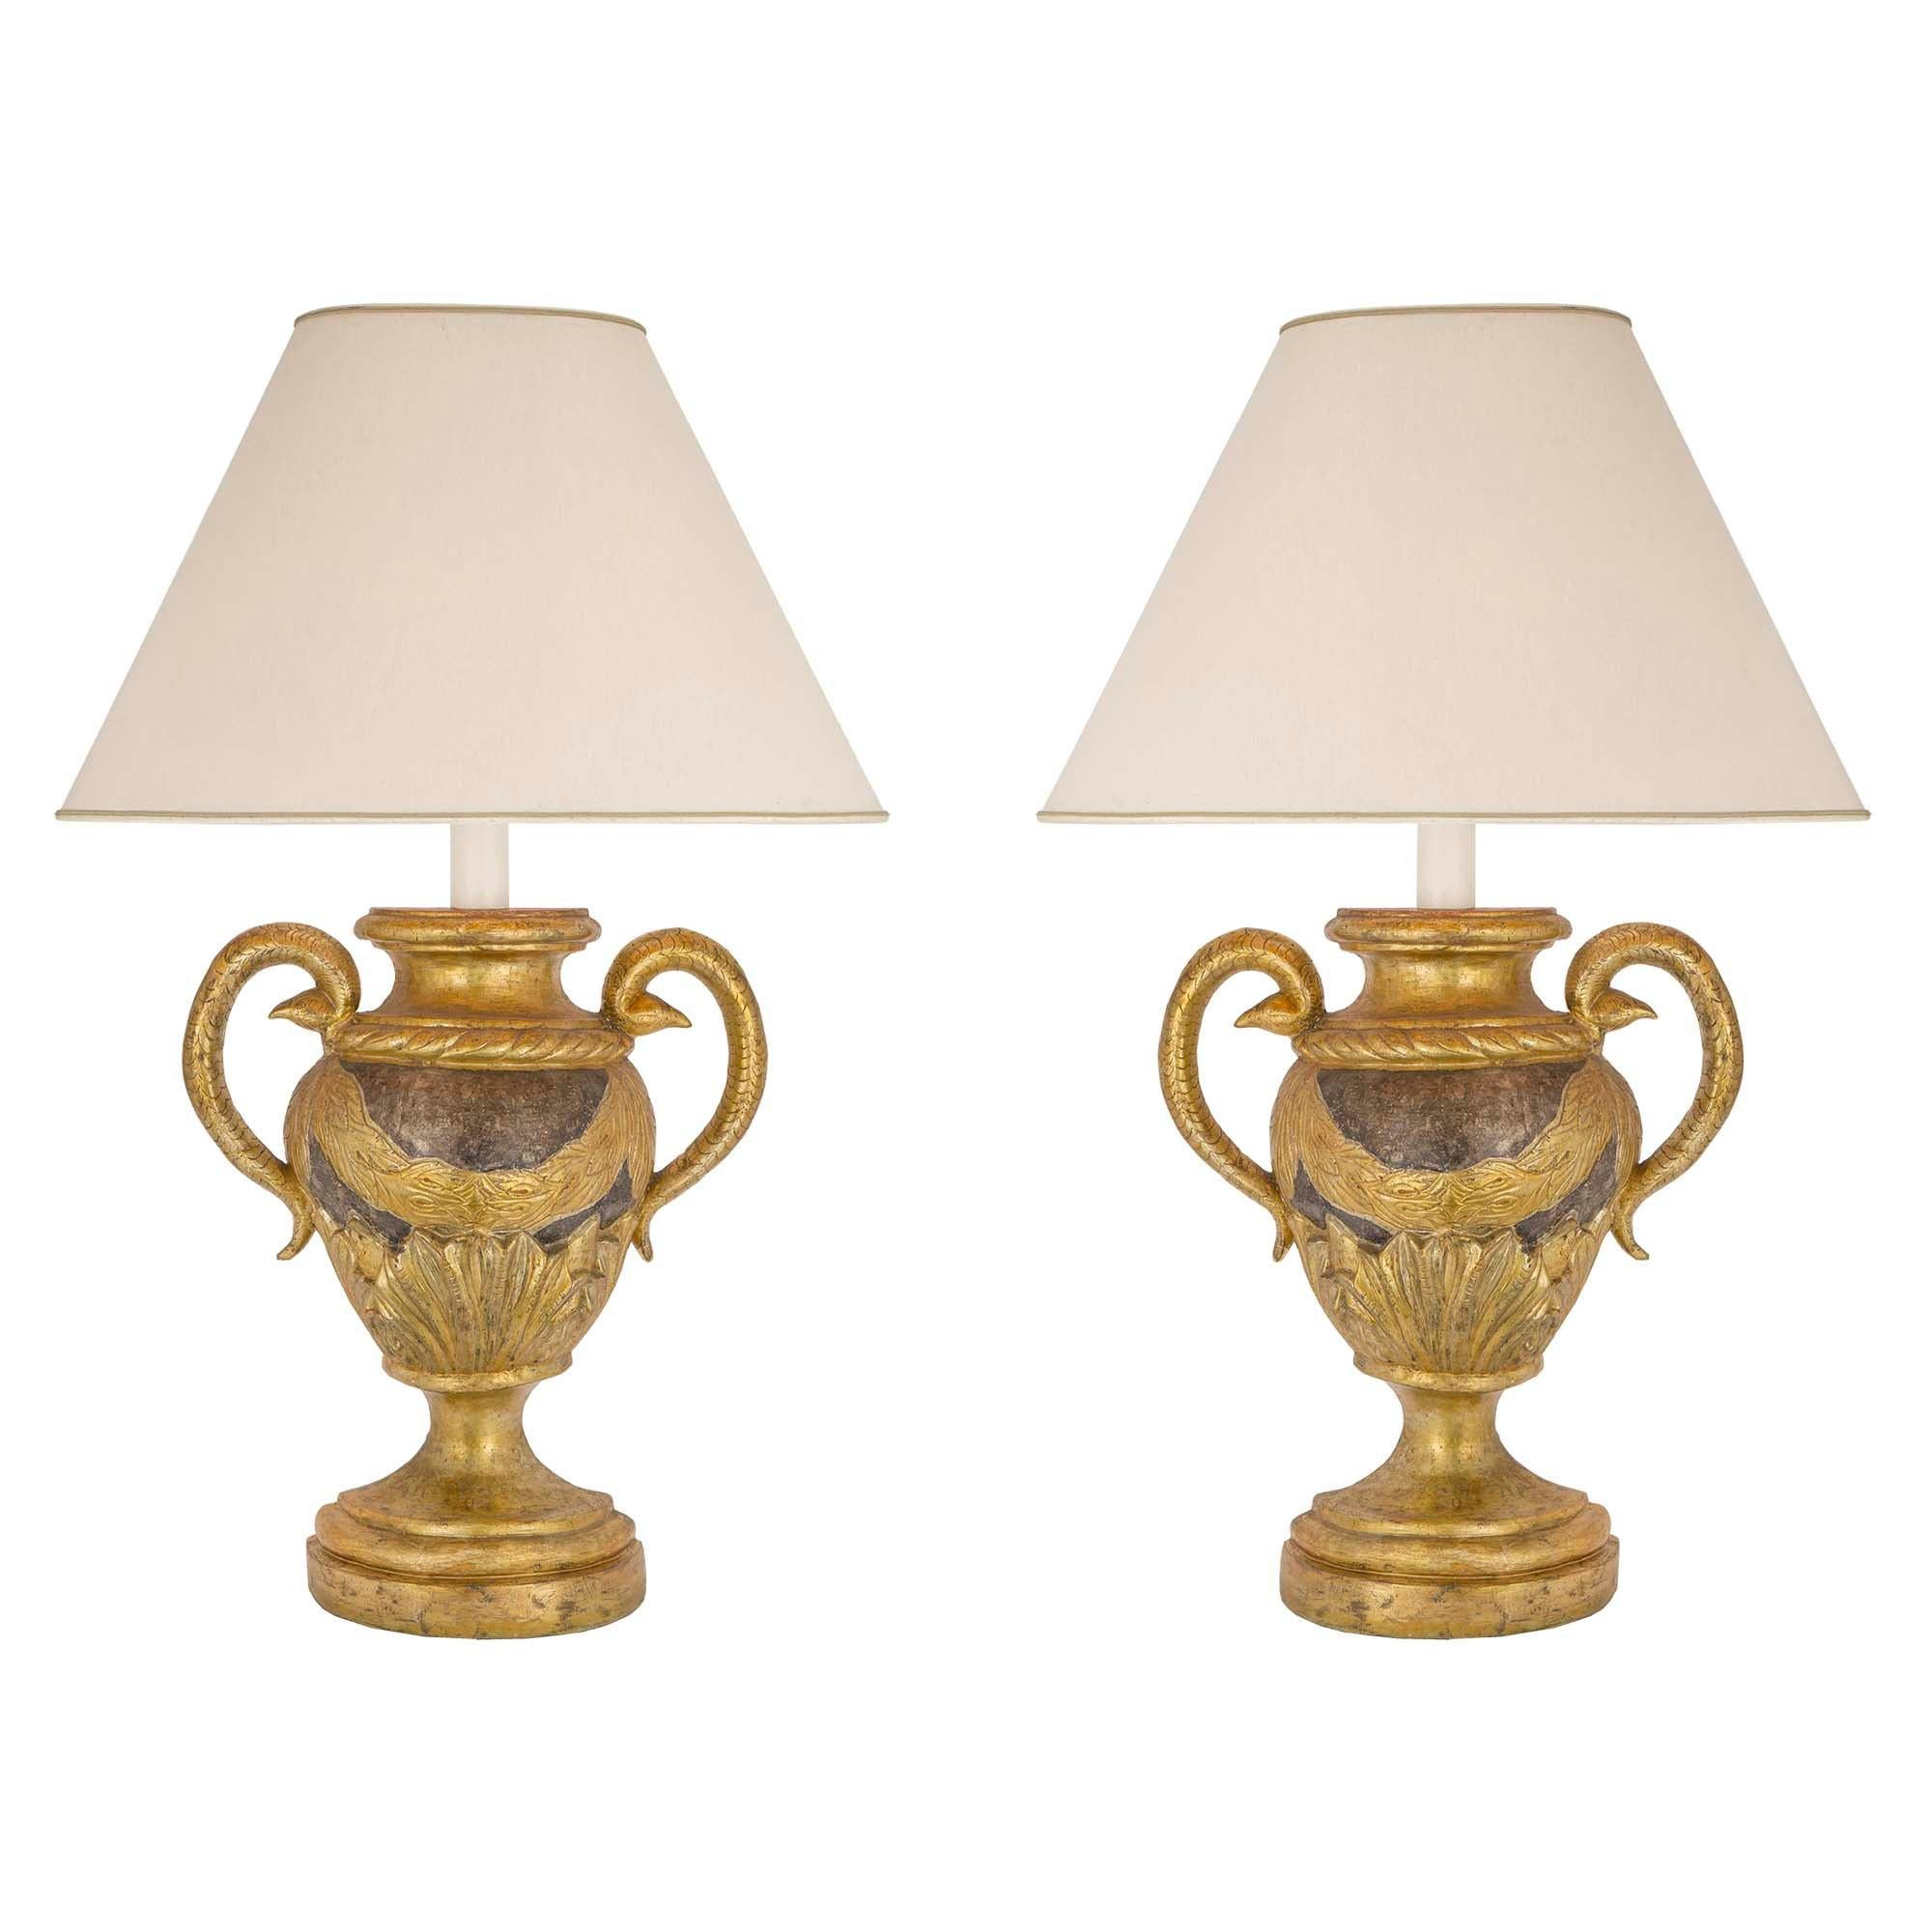 Pair of Italian 18th Century Louis XVI Period Mecca and Silver Leaf Lamps